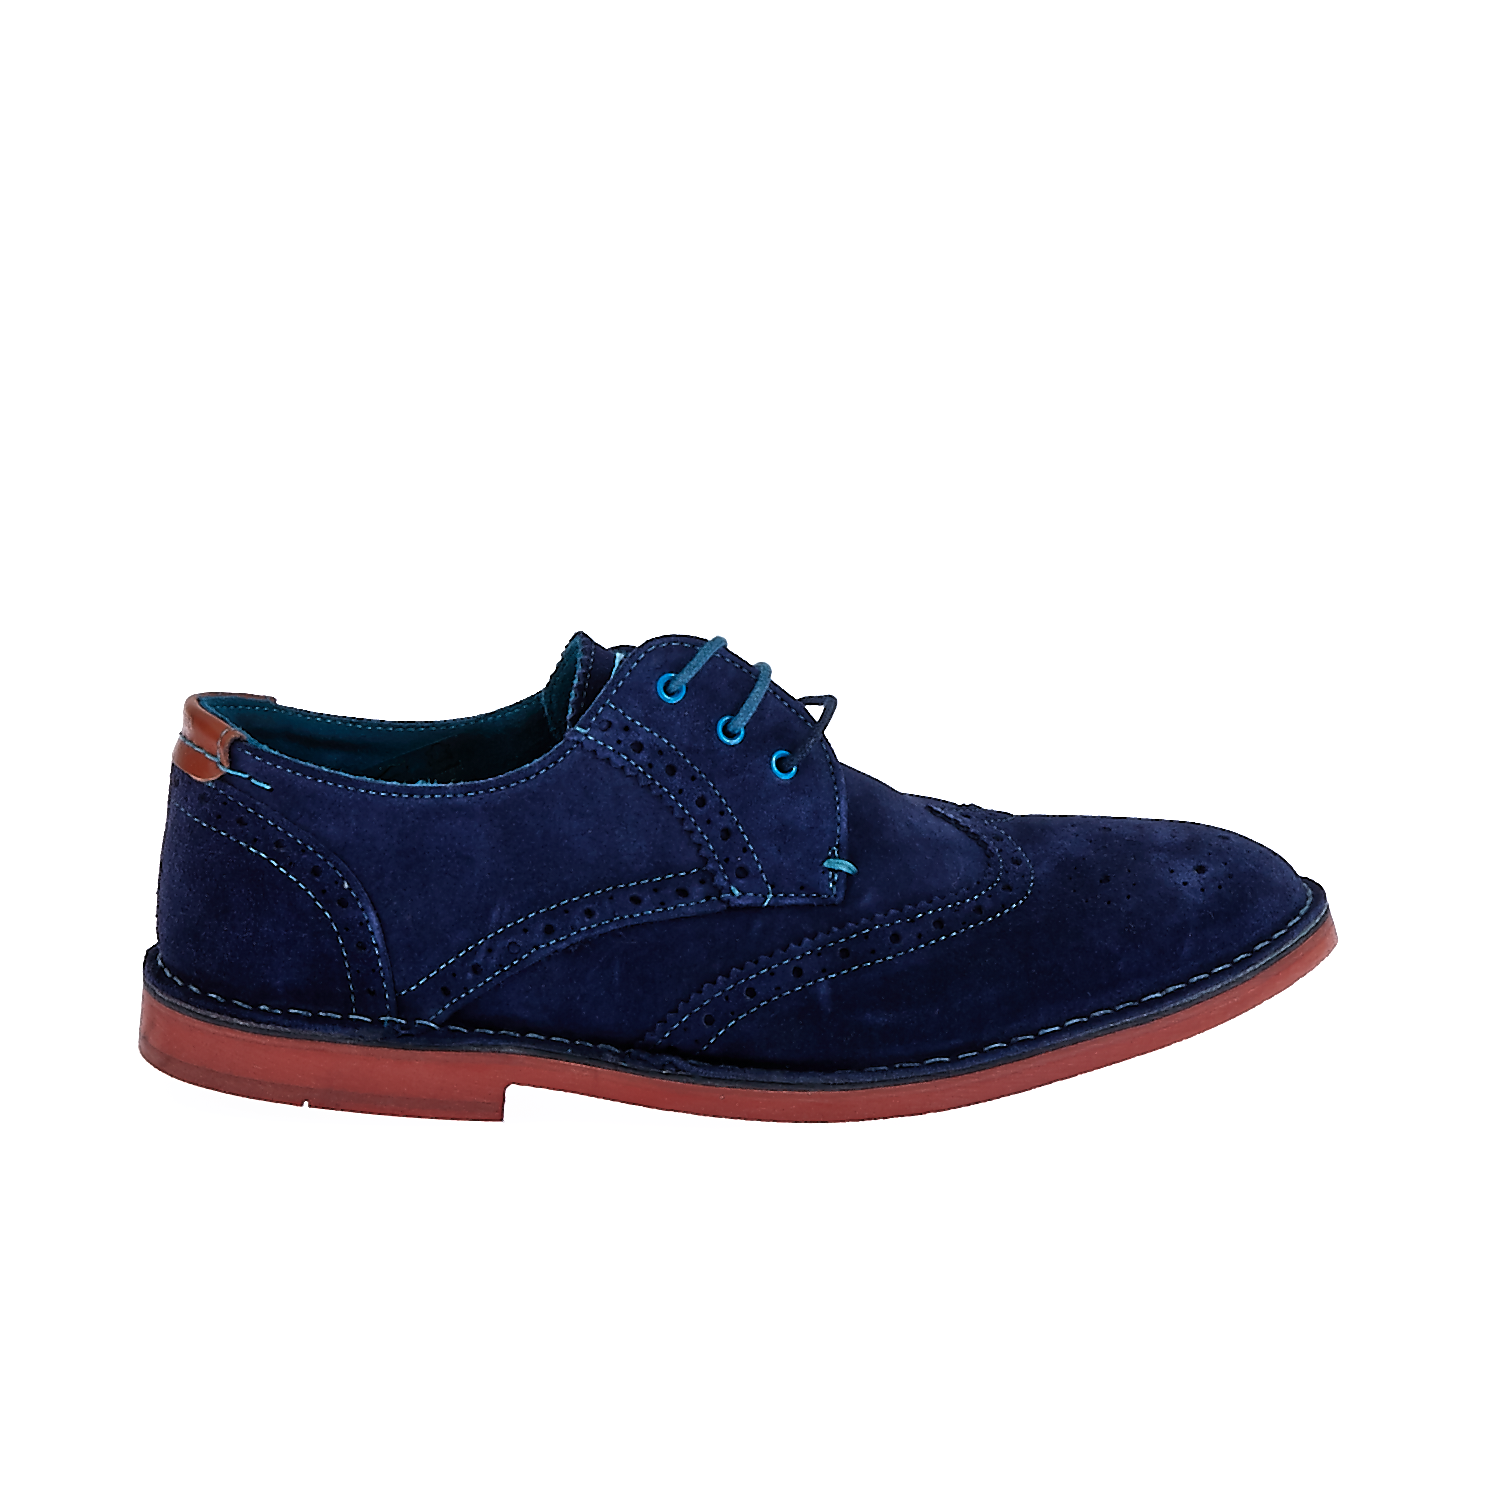 TED BAKER - Ανδρικά παπούτσια JAMFRO 6 Ted Baker μπλε ανδρικά παπούτσια μοκασίνια loafers